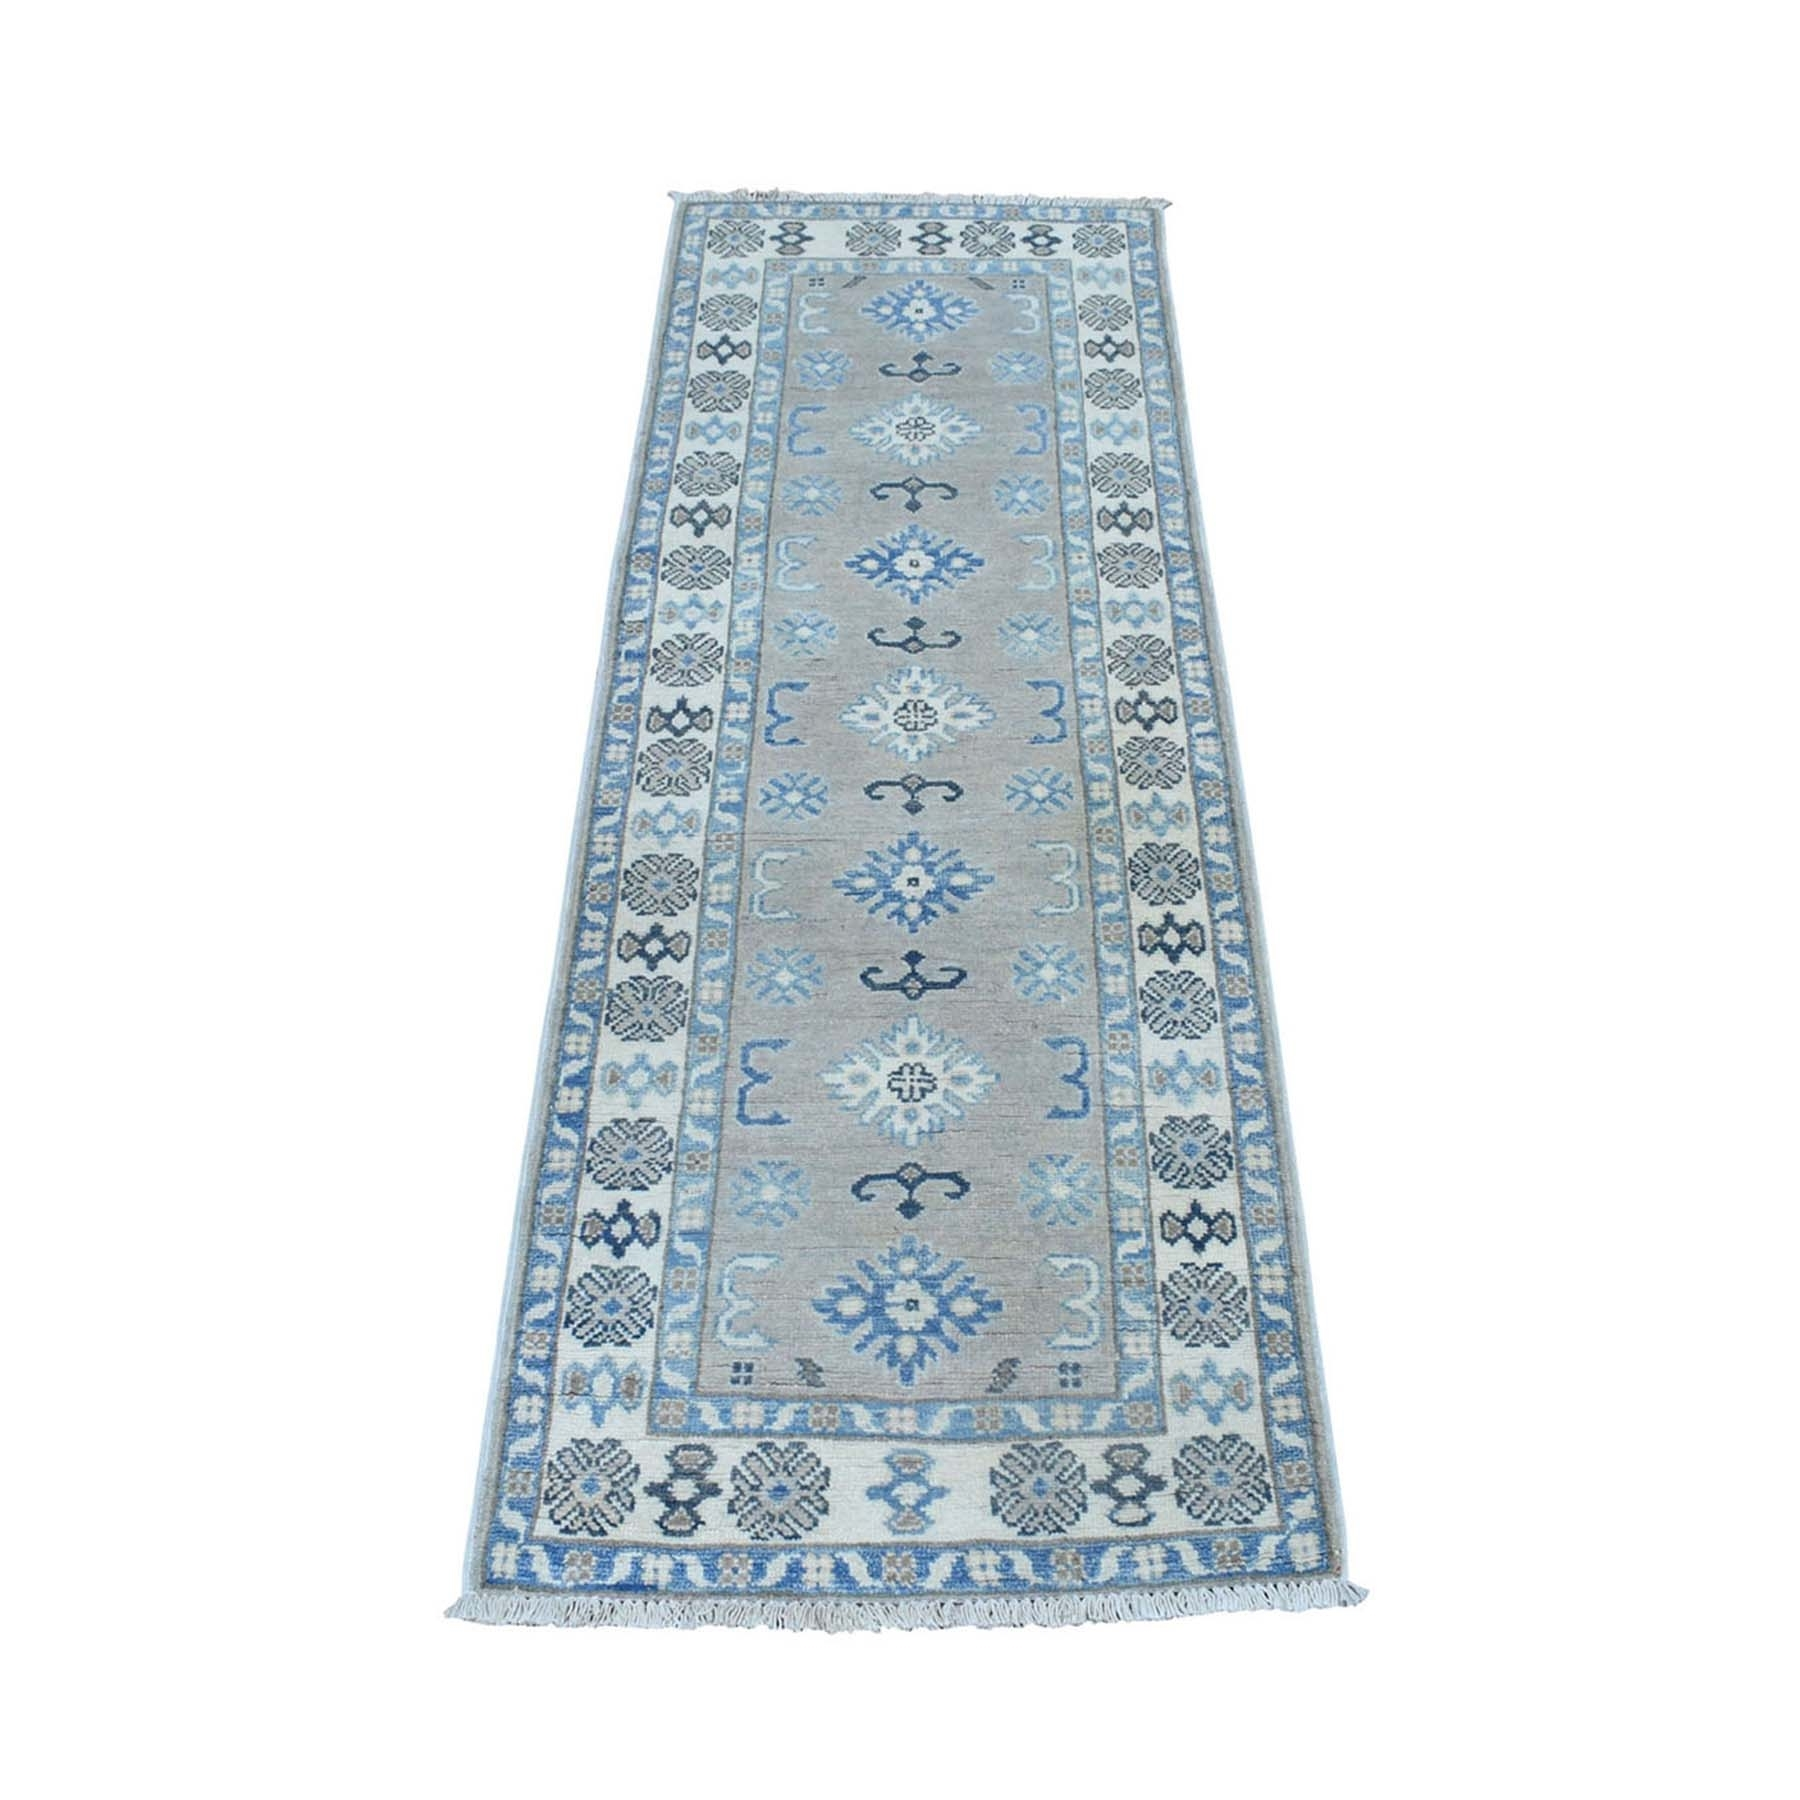 "2'x5'5"" Hand Knotted Gray Vintage Look Kazak Geometric Design Pure Wool Runner Oriental Rug"